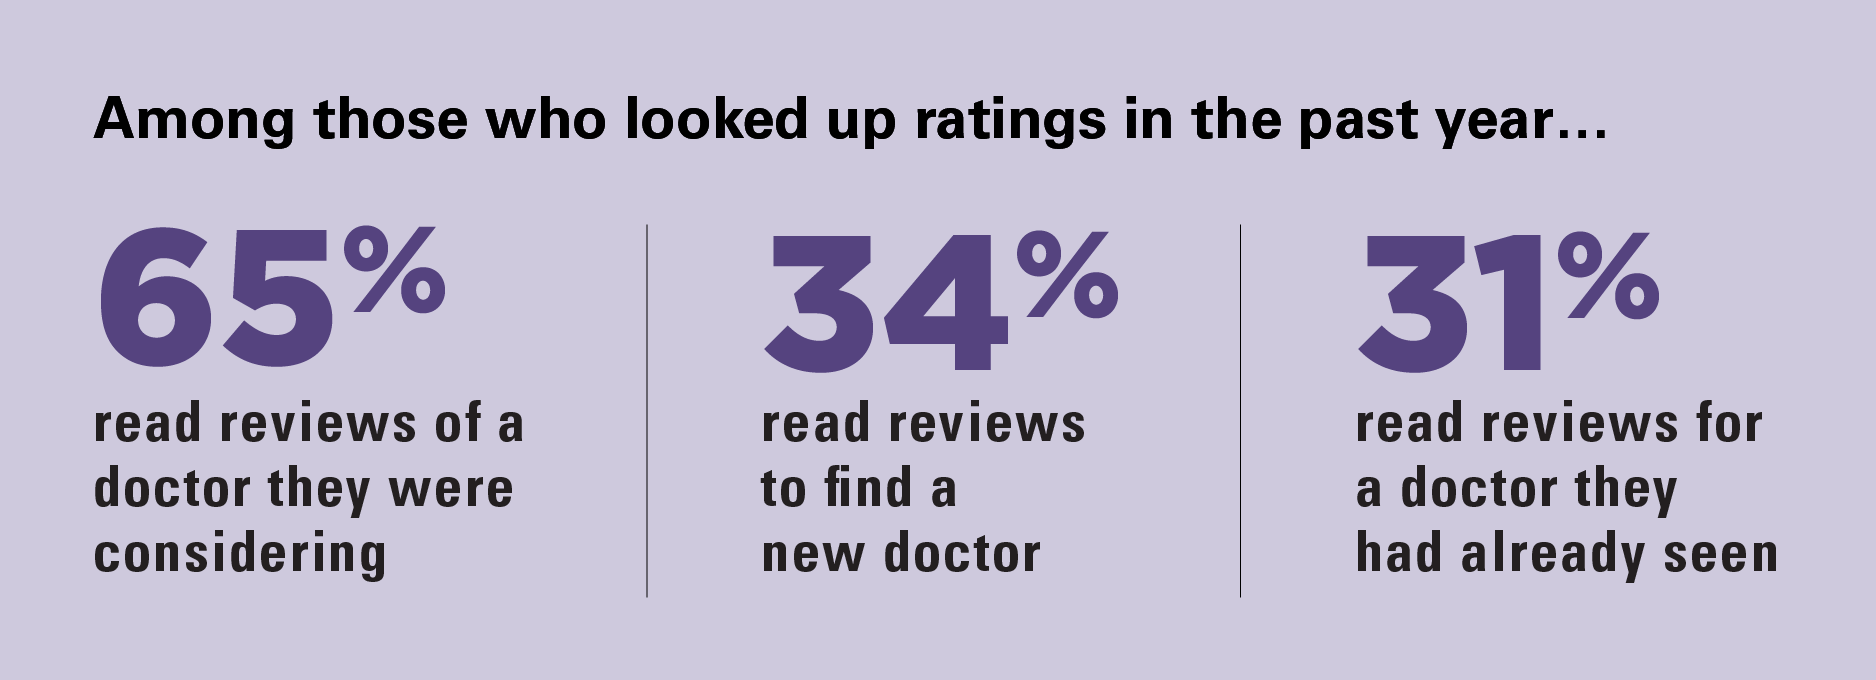 Among those who looked up ratings in the past year, 65% read reviews of a doctor they were considering, 34% read reviews to find a new doctor, 31% read reviews for a doctor they had already seen.